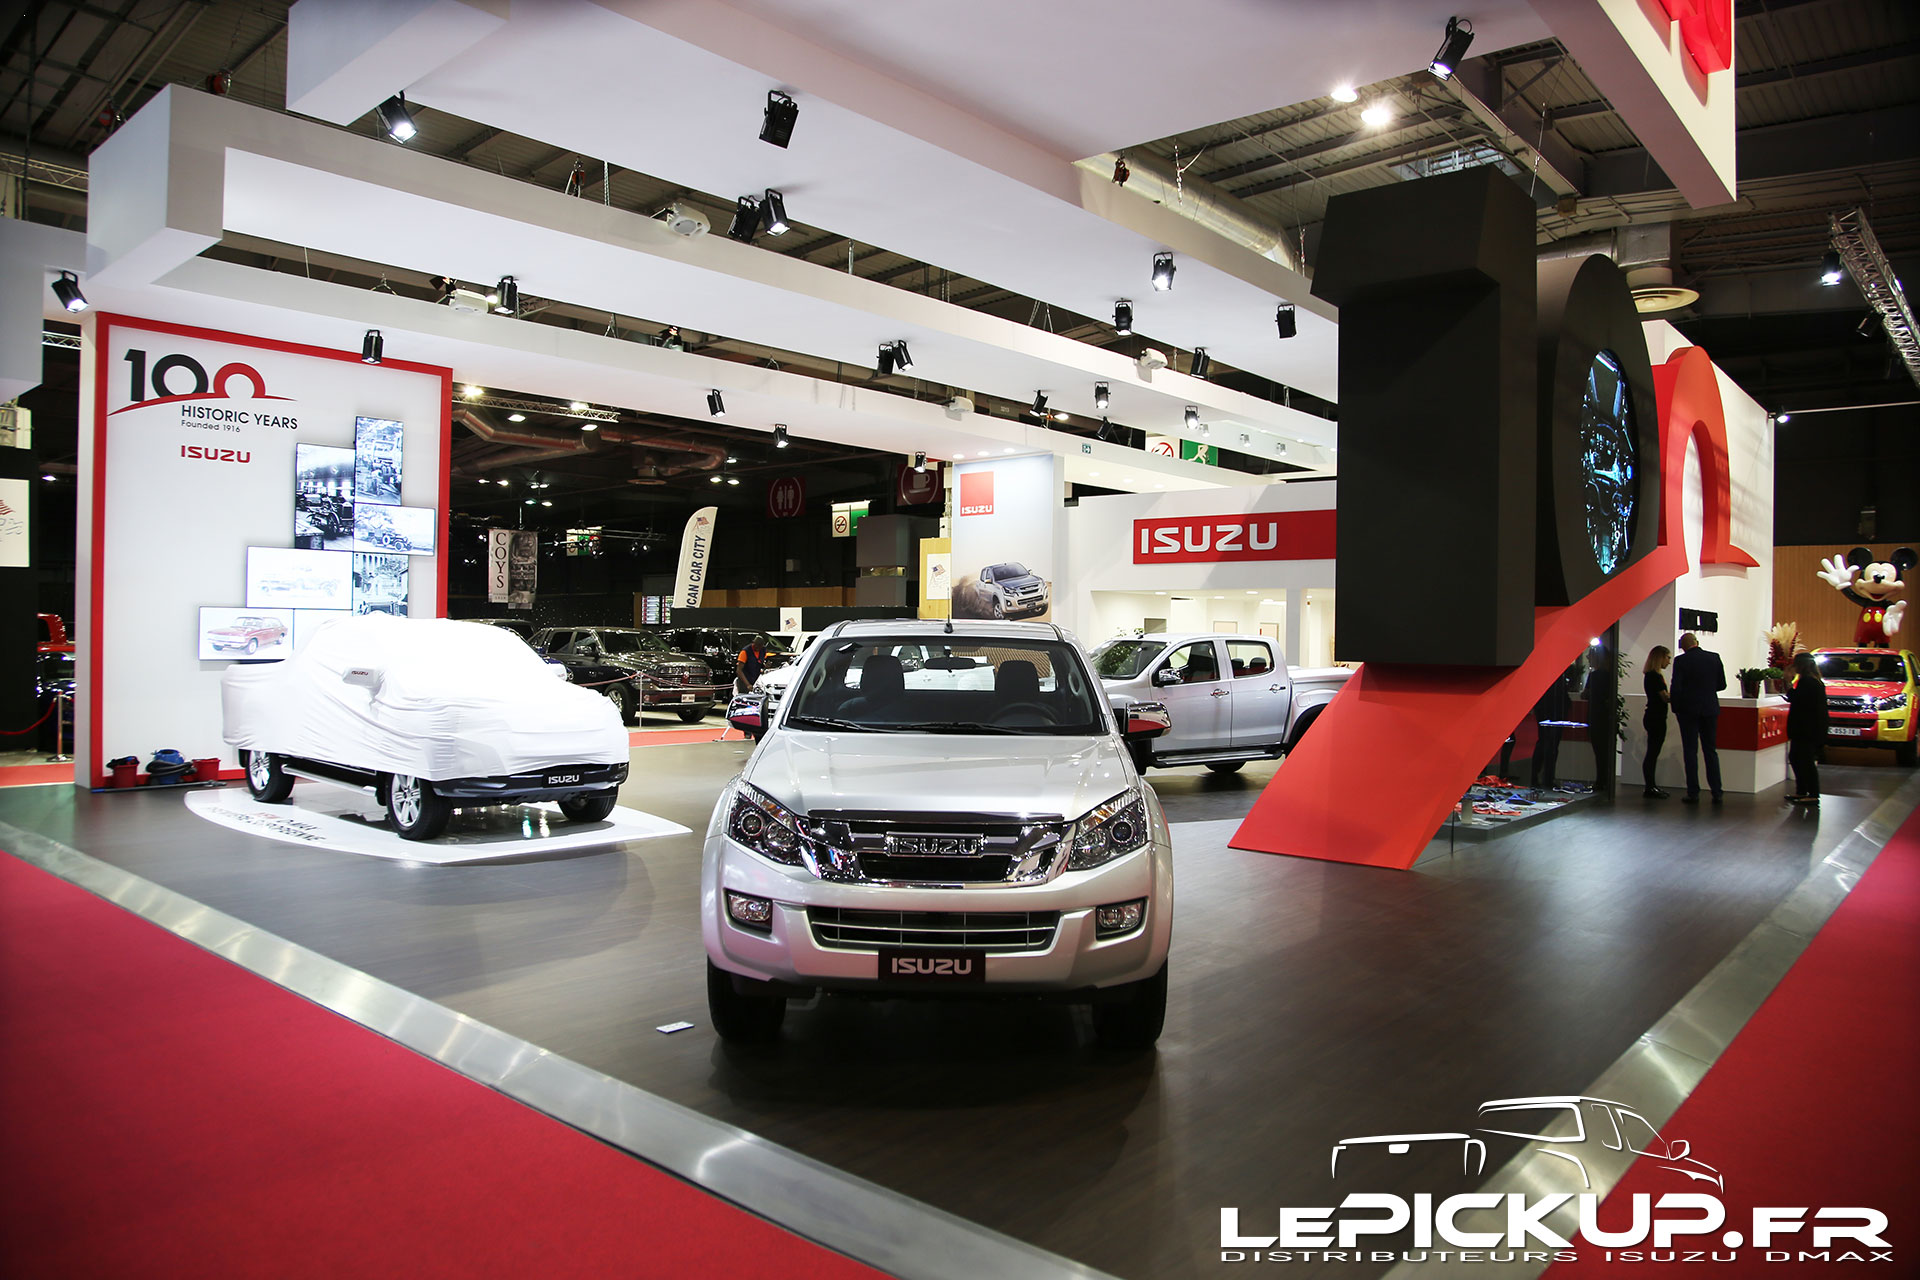 d max 2017 visite virtuelle 360 du stand isuzu au mondial de l 39 automobile 2016 actu isuzu. Black Bedroom Furniture Sets. Home Design Ideas